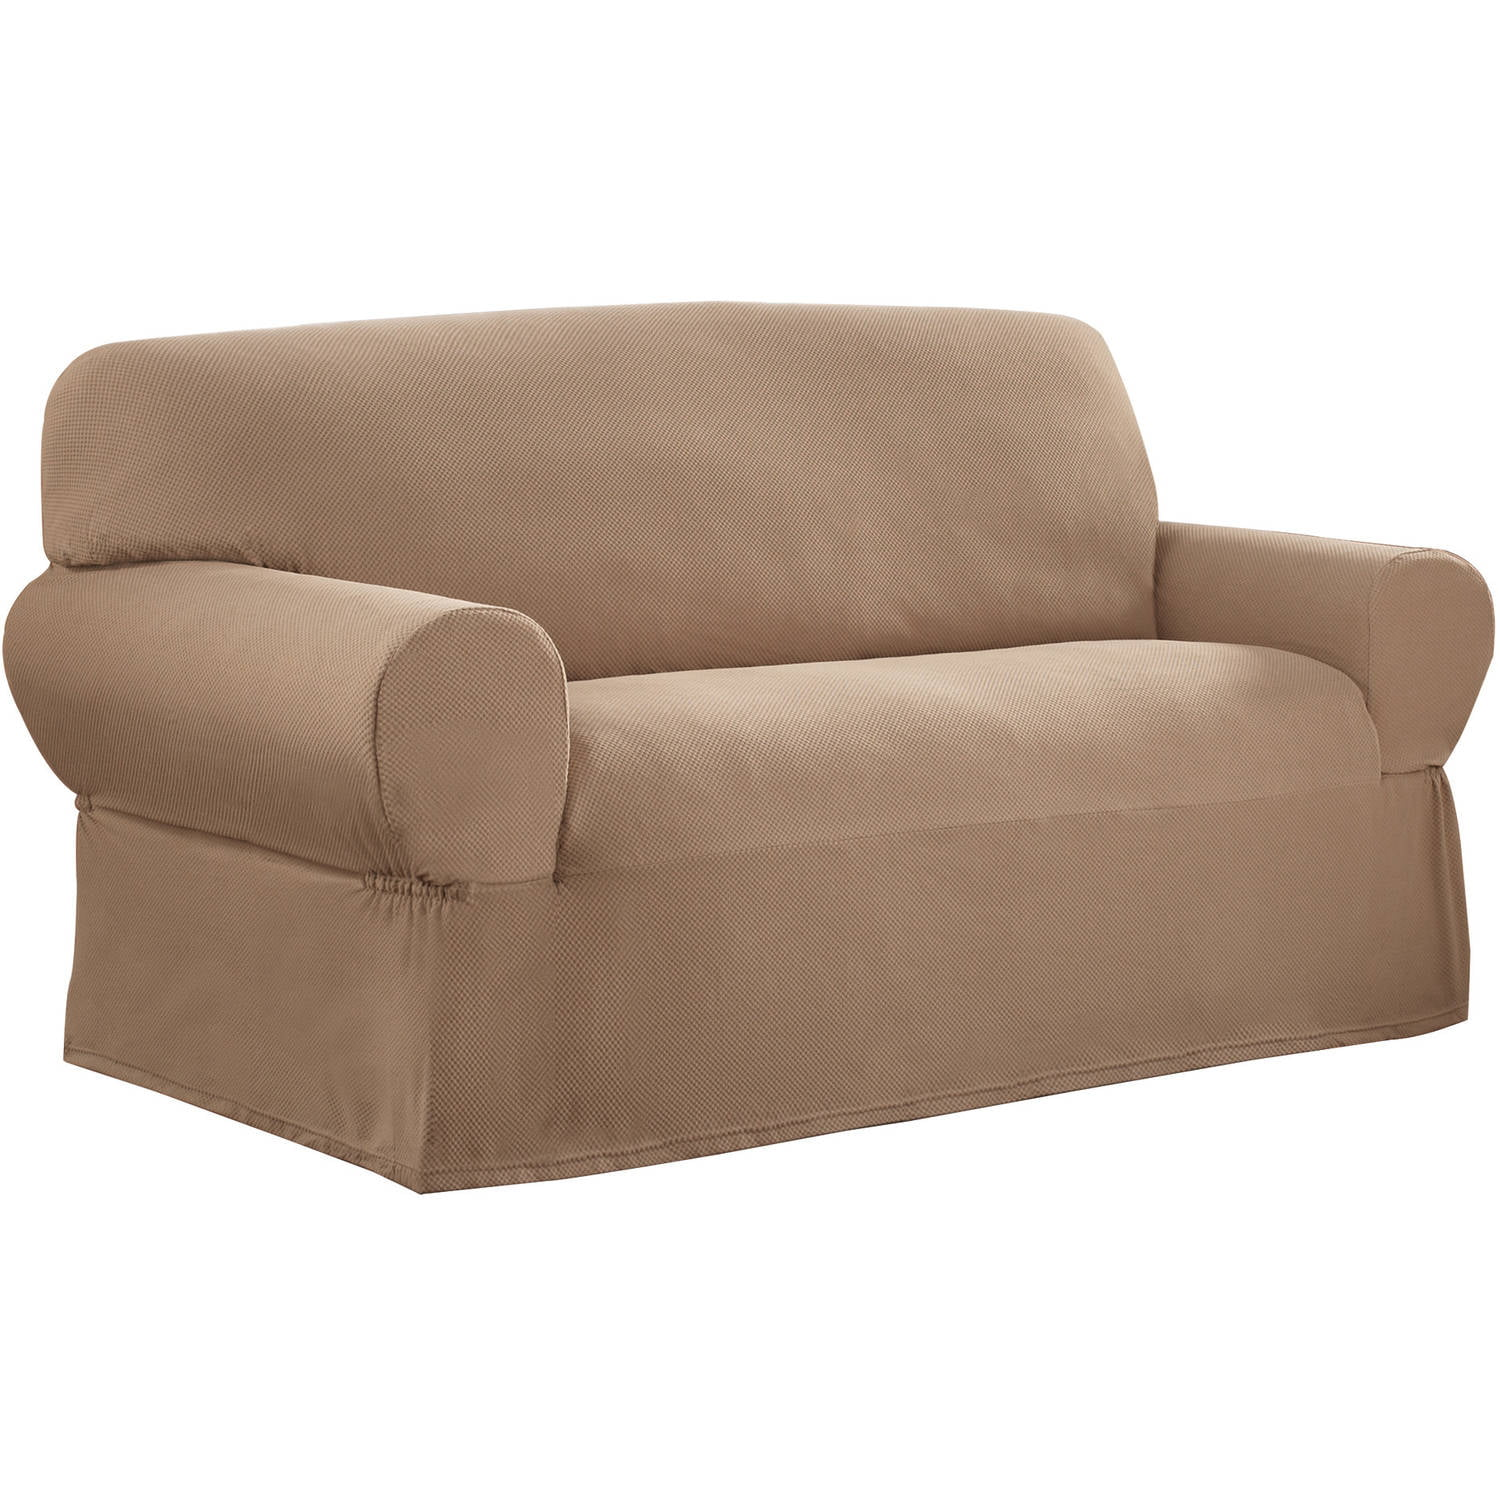 Sure Fit Cotton Duck Sofa Slipcover Walmart Com